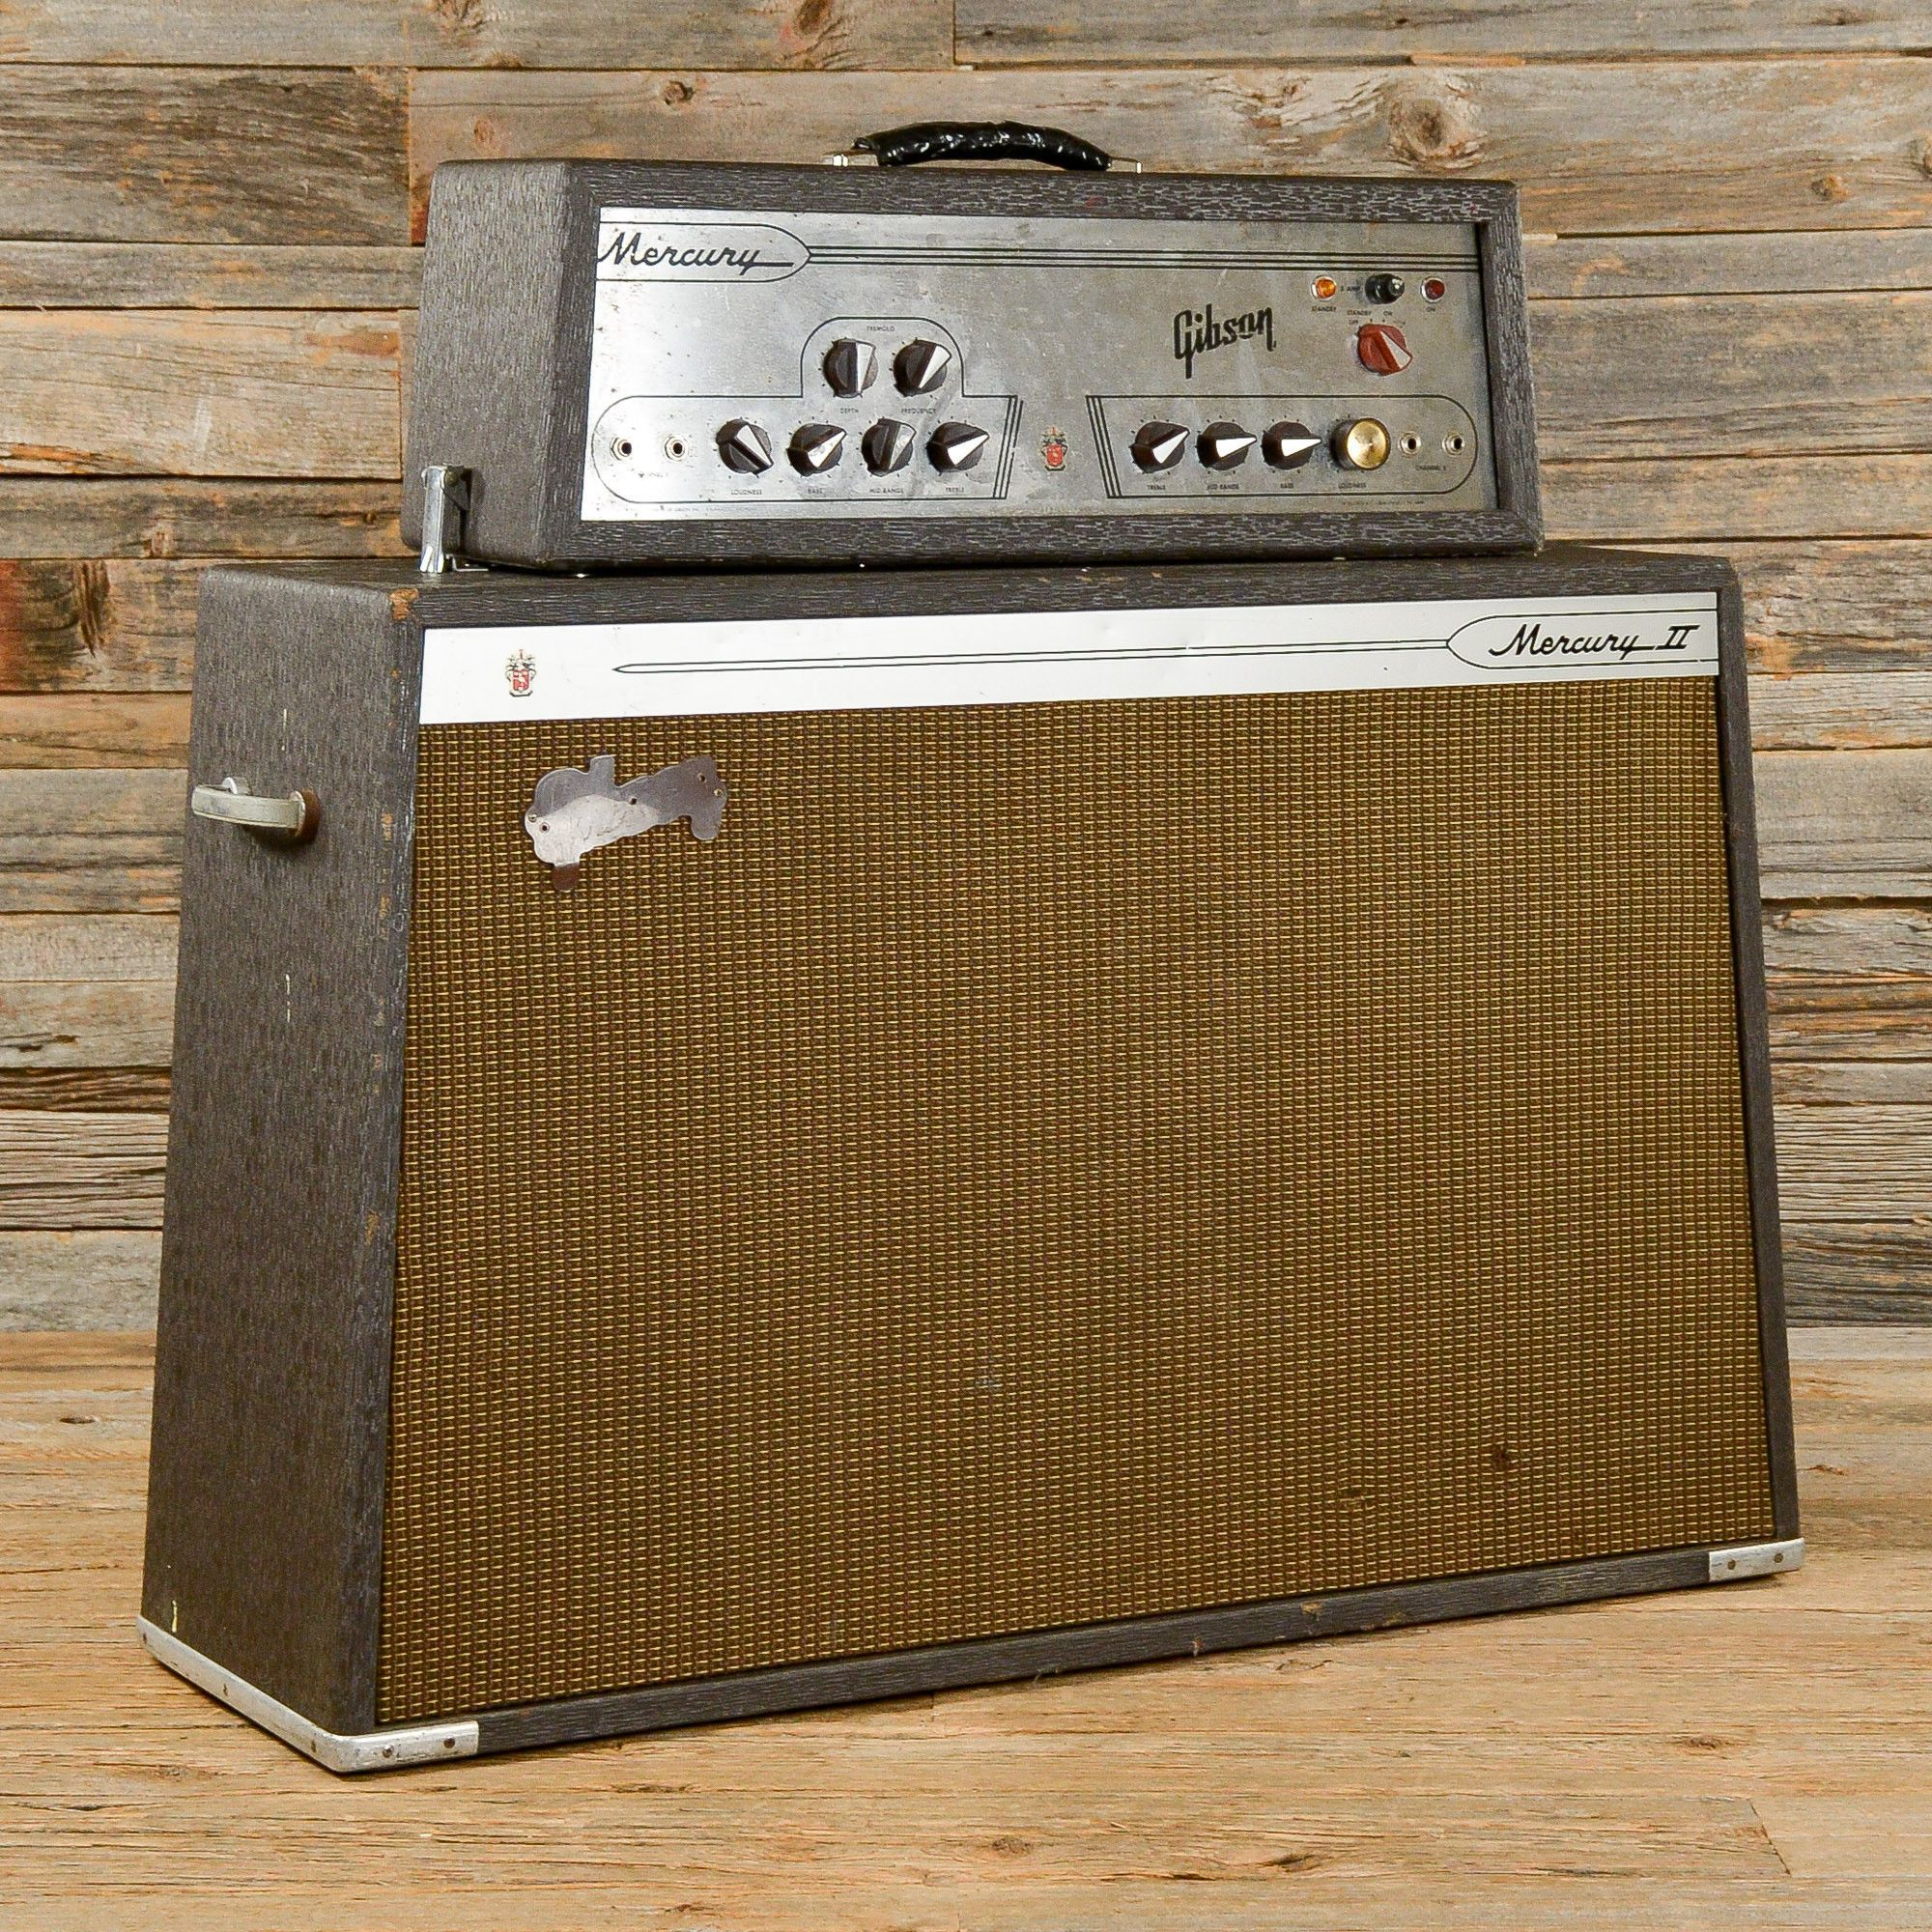 gibson mercury ii 35w head cab 1960s s417 cool music gear in 2019 guitar amp vintage. Black Bedroom Furniture Sets. Home Design Ideas